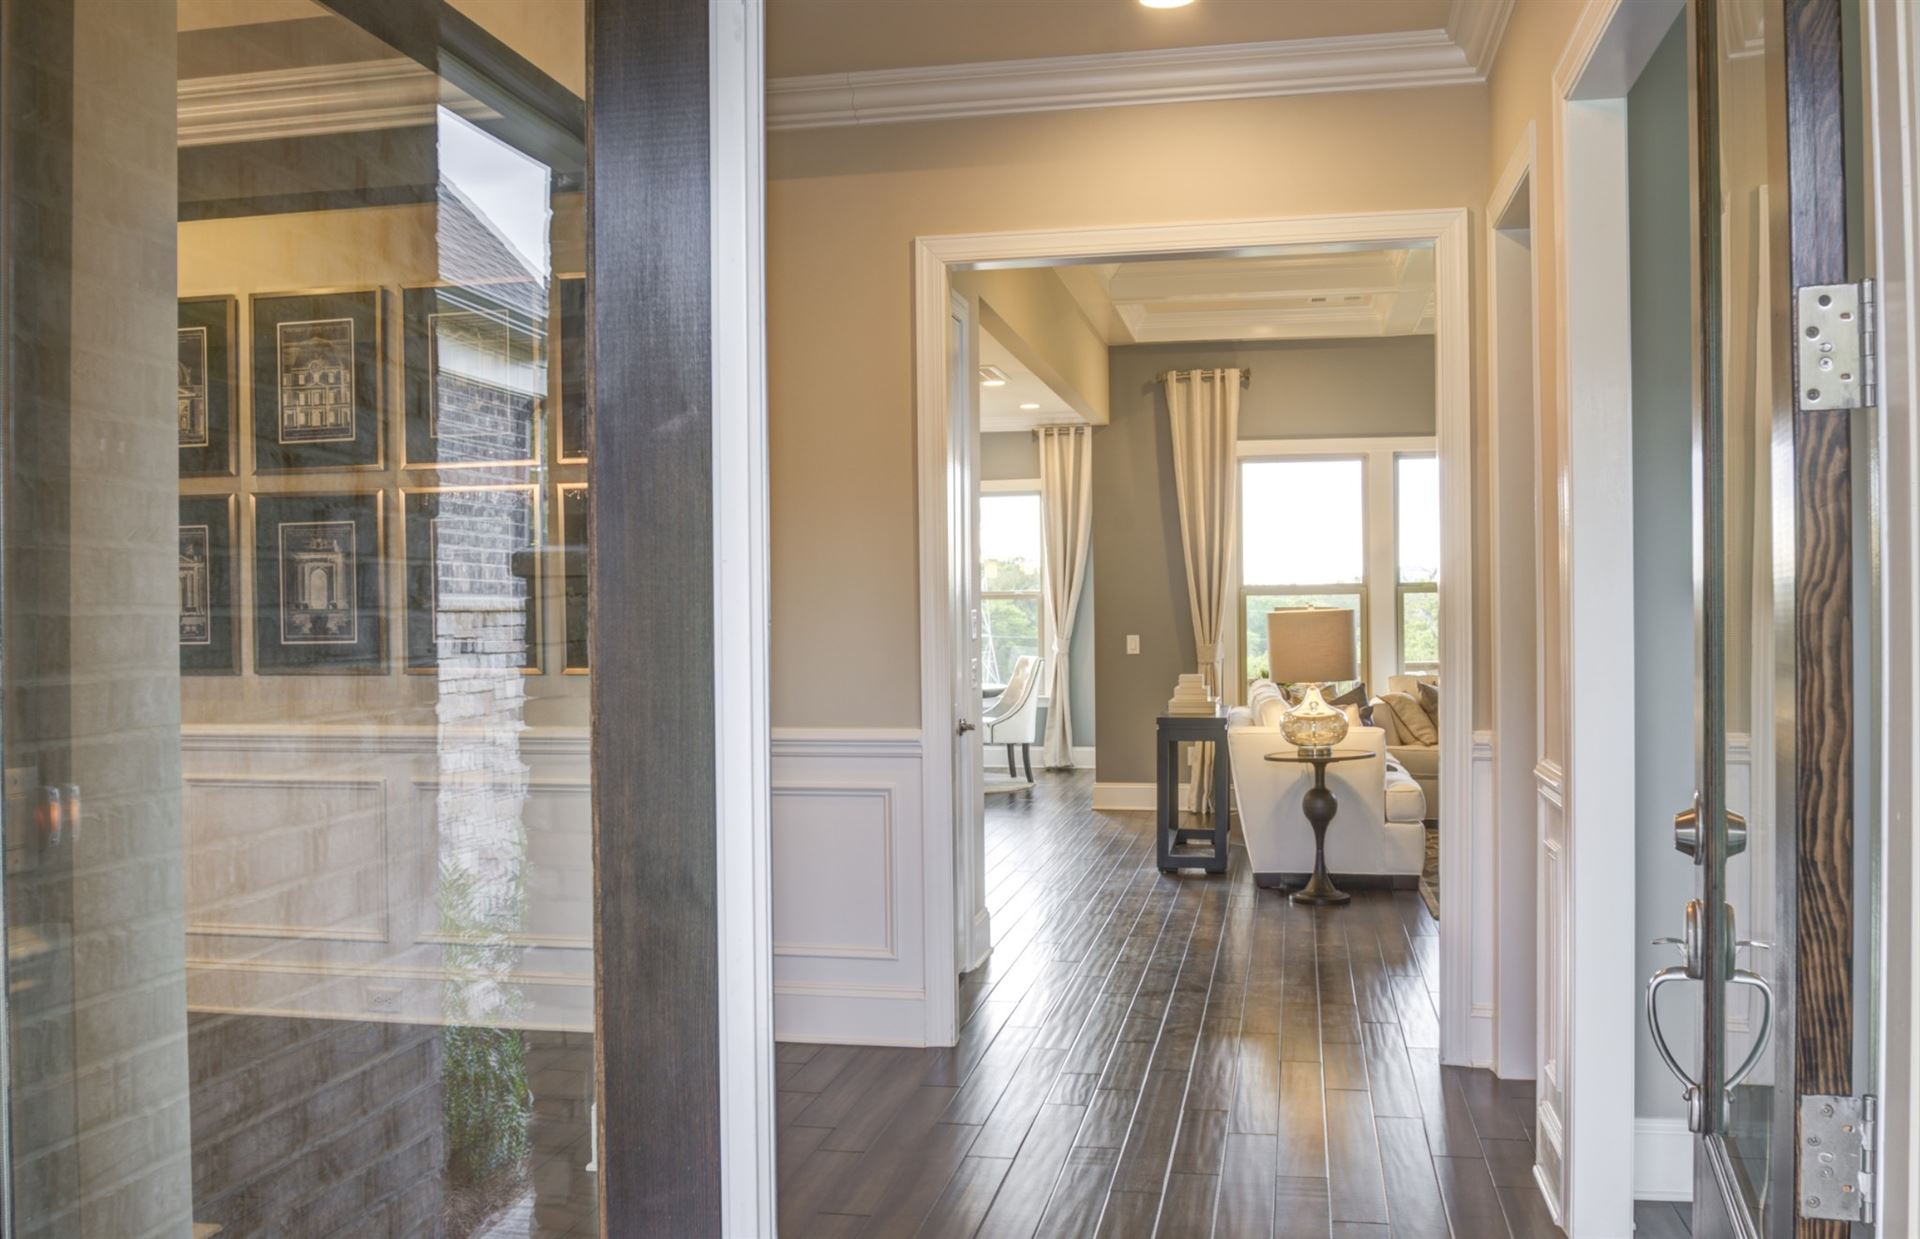 Photo of 3166 Chase Point Drive- Lot 322, Franklin, TN 37067 (MLS # 2288525)